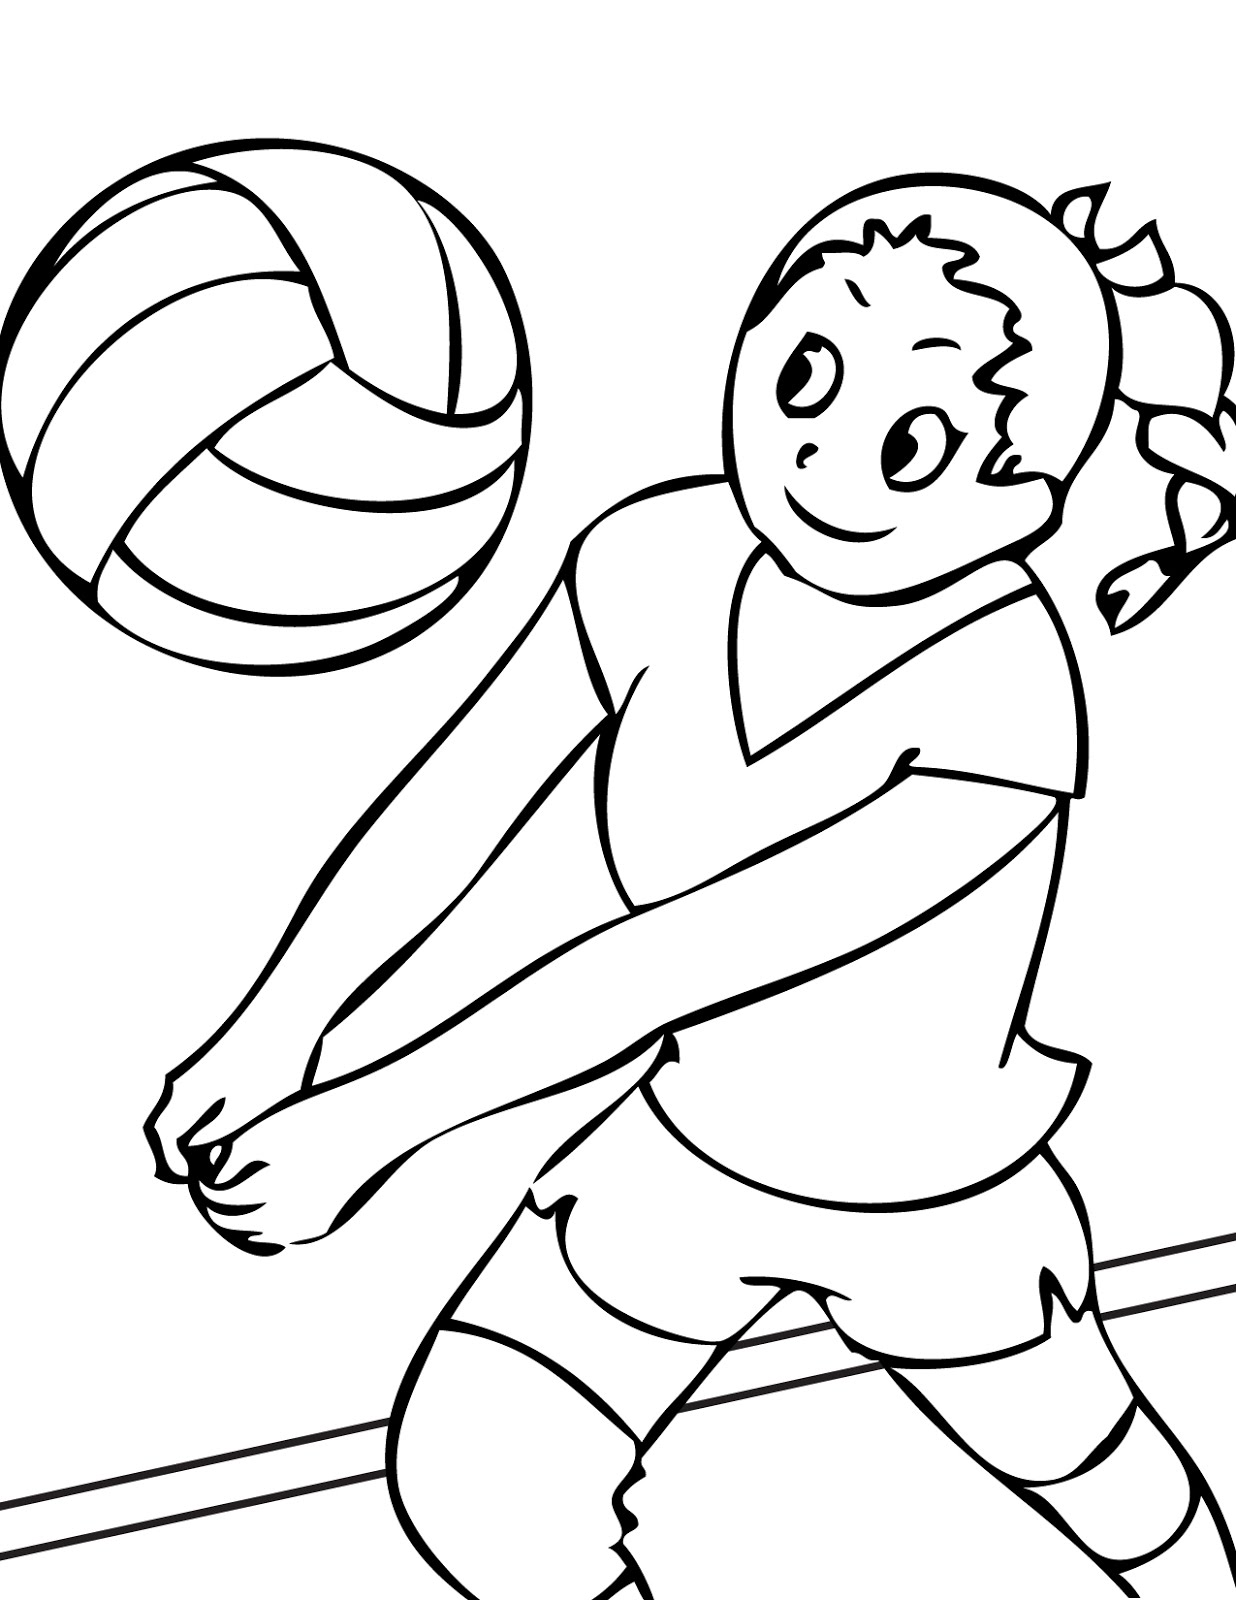 Sports colouring pictures